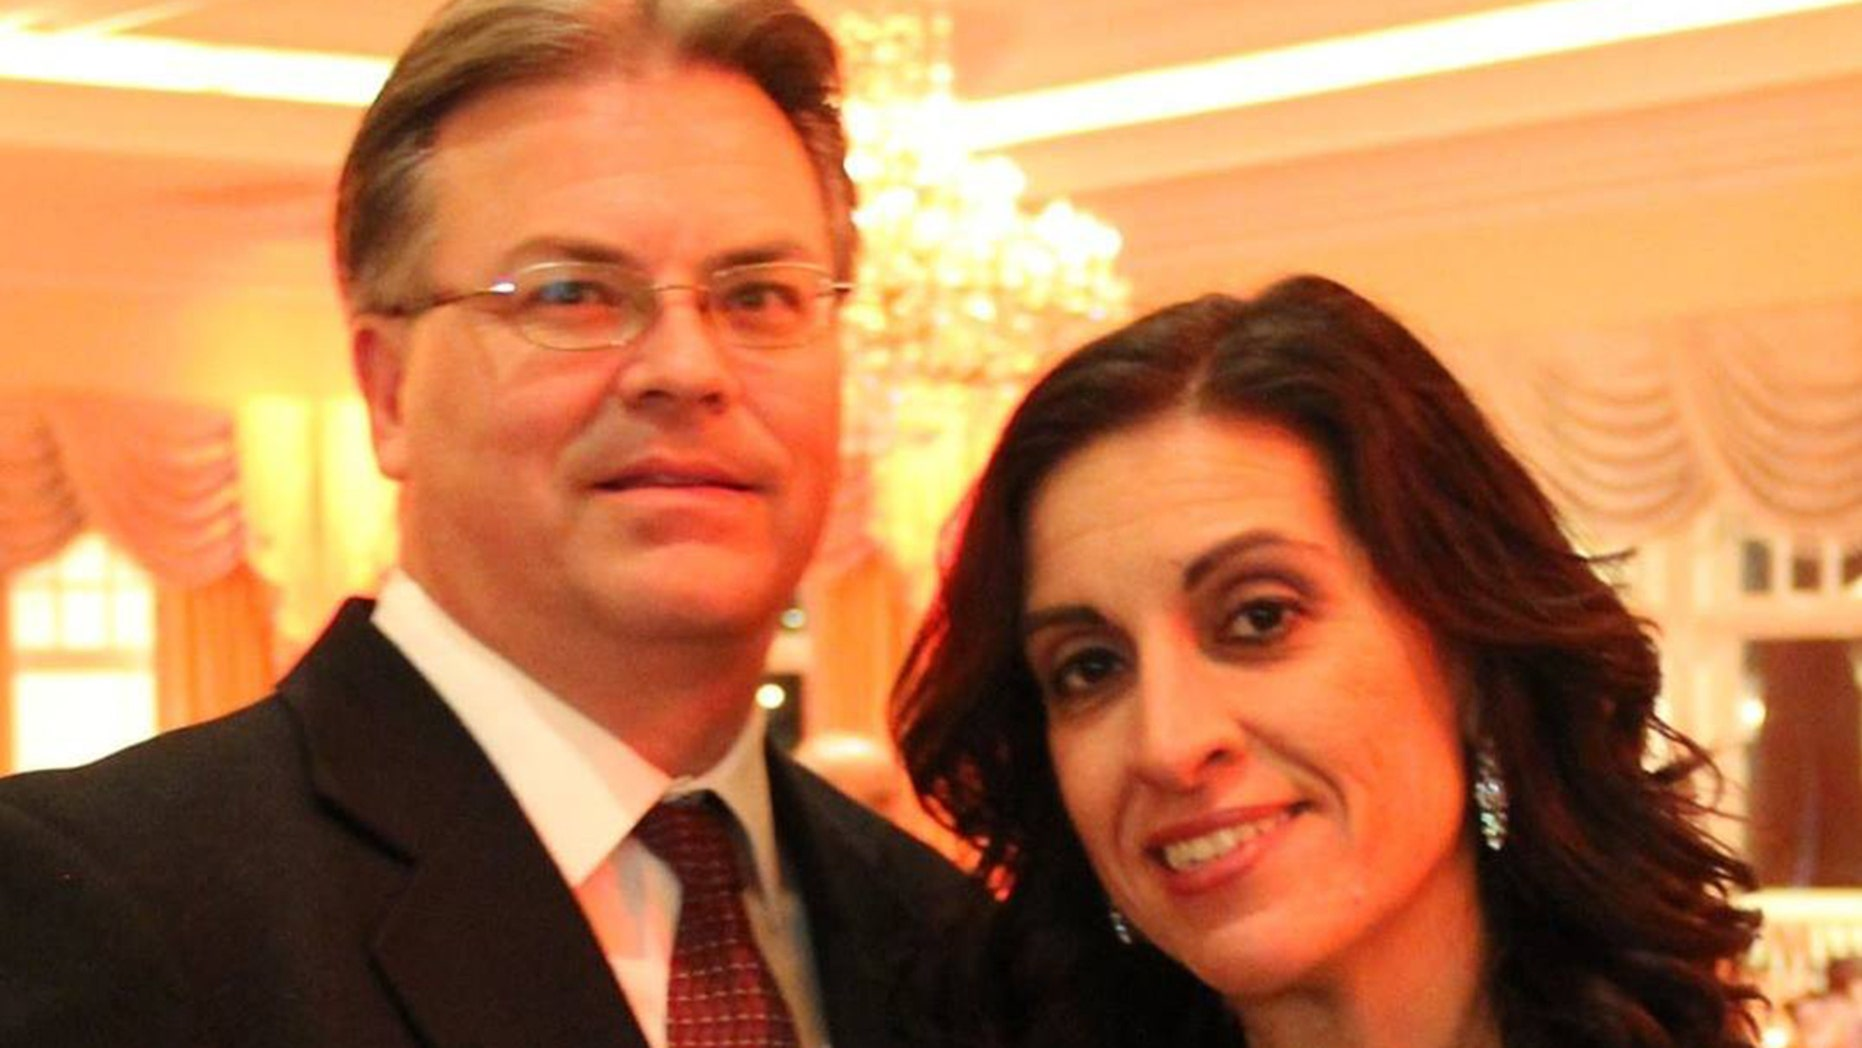 Denise Bartone, right, was found slain in her New Jersey home on Monday and her husband's, Kenneth Bartone,left, body was later found in a river after an apparent suicide.